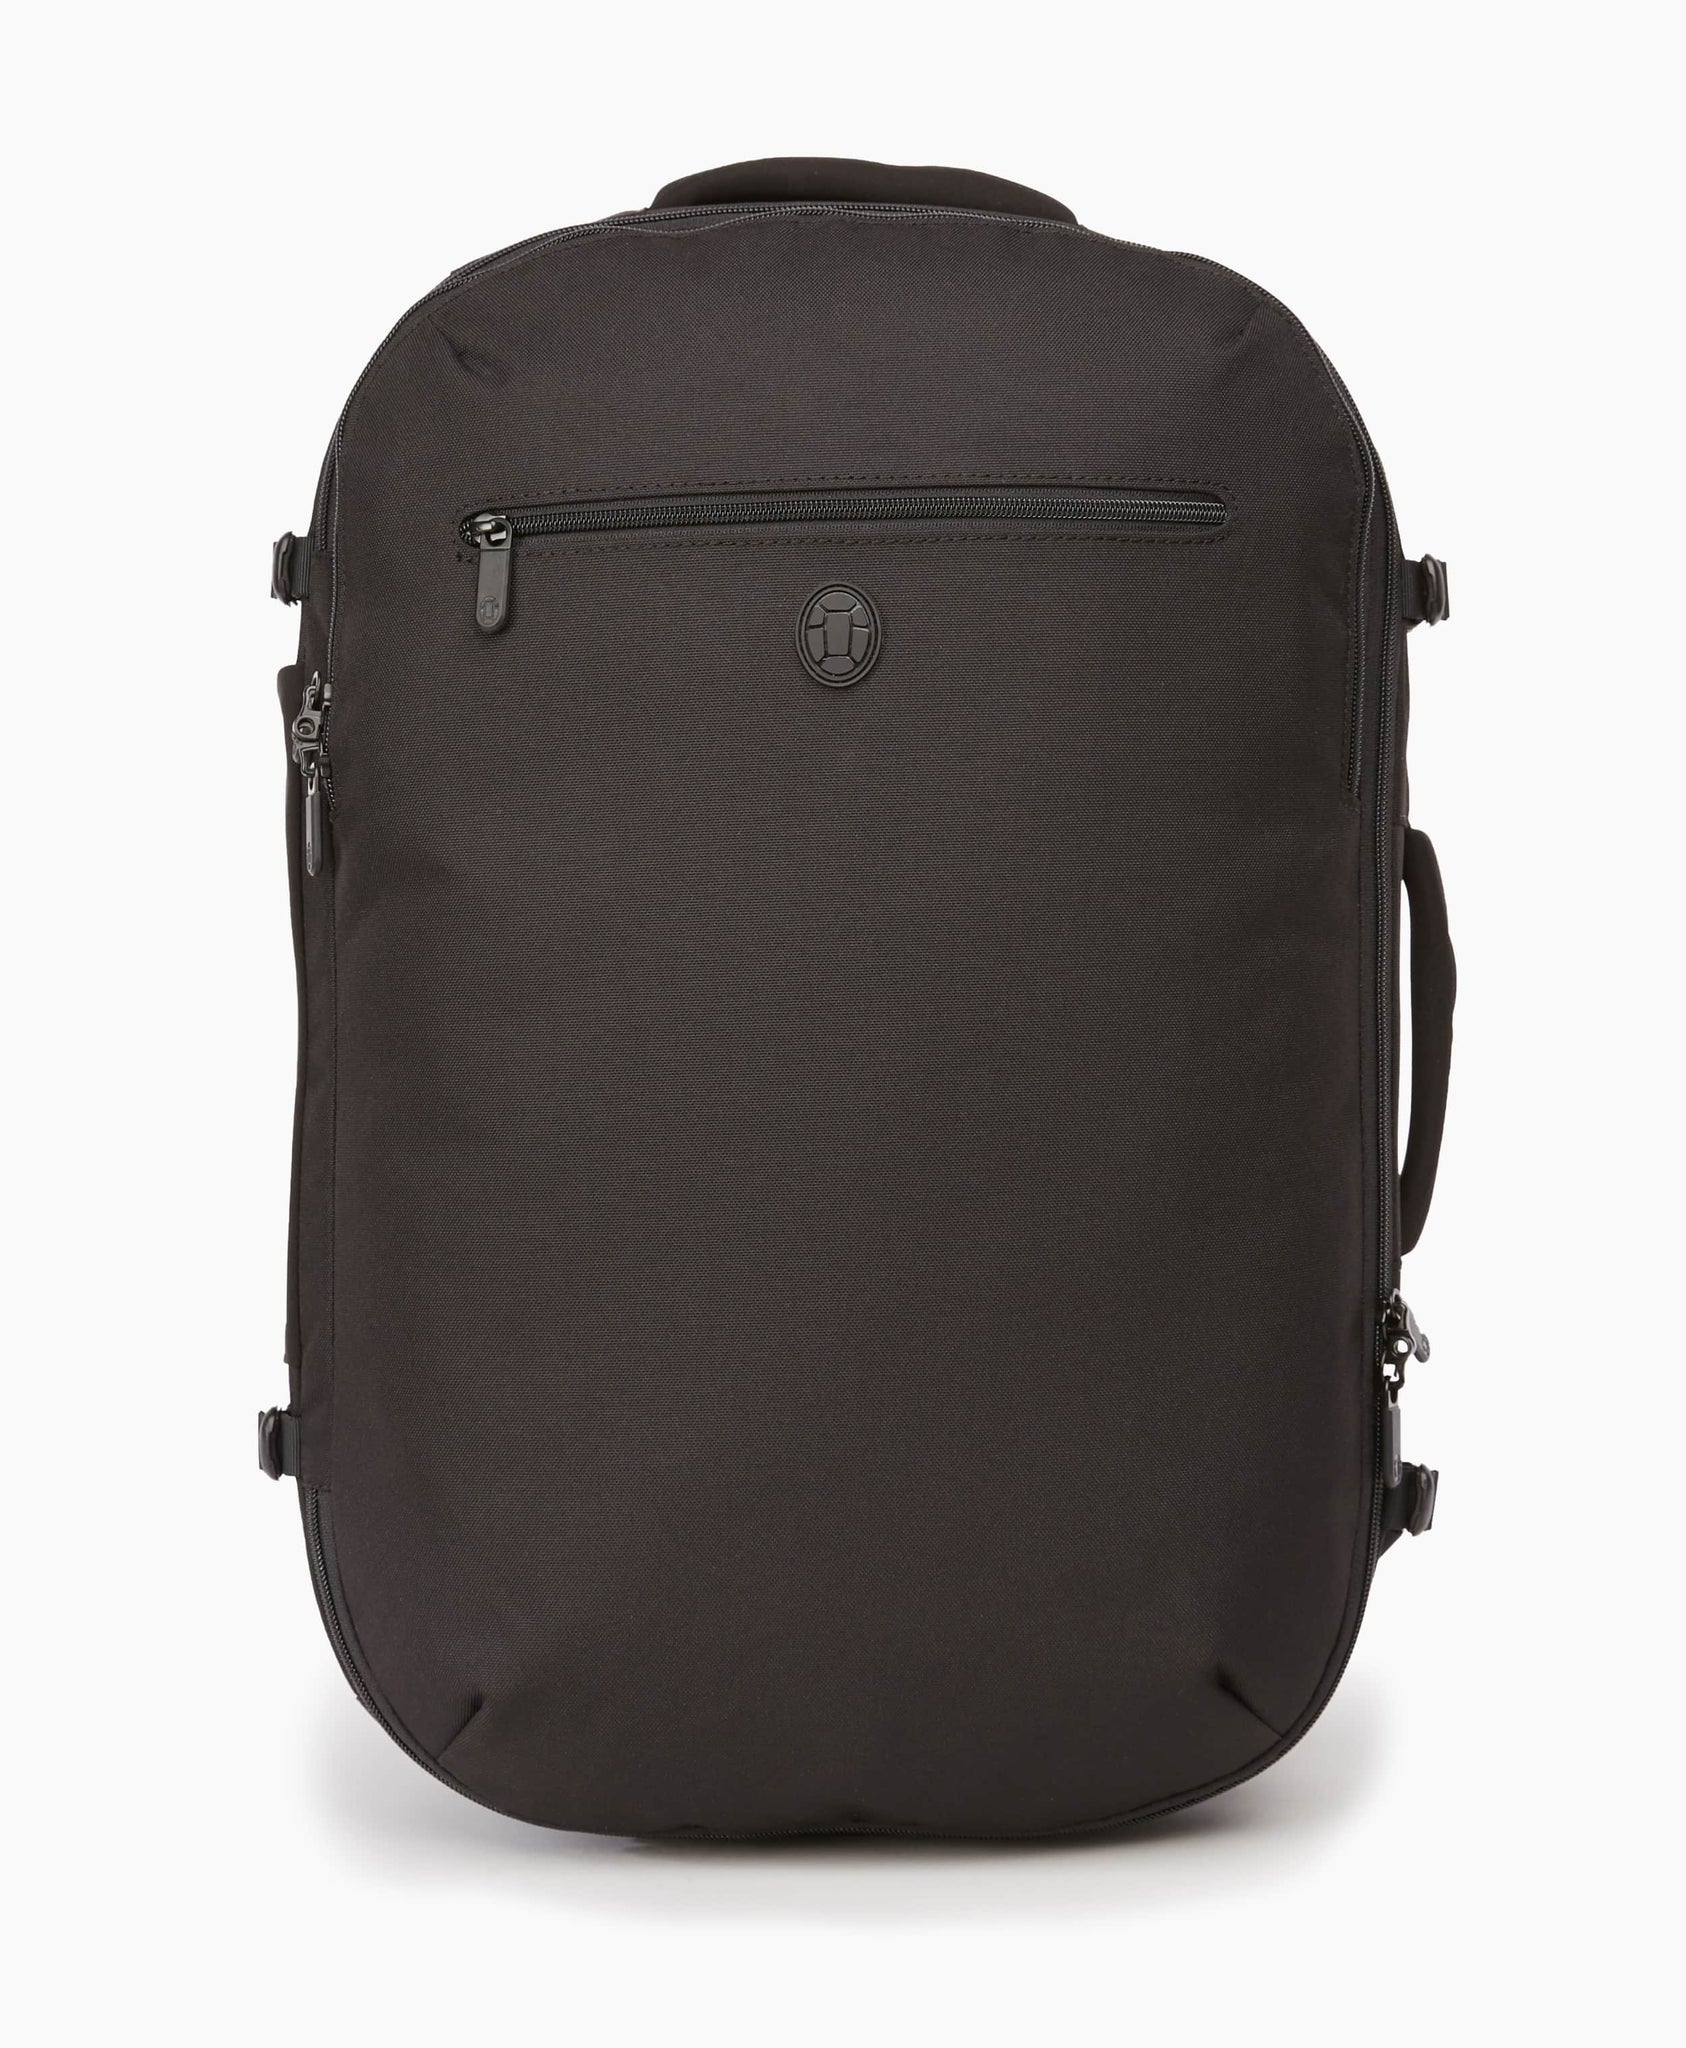 product/ 45L: Maximum-sized US carry on